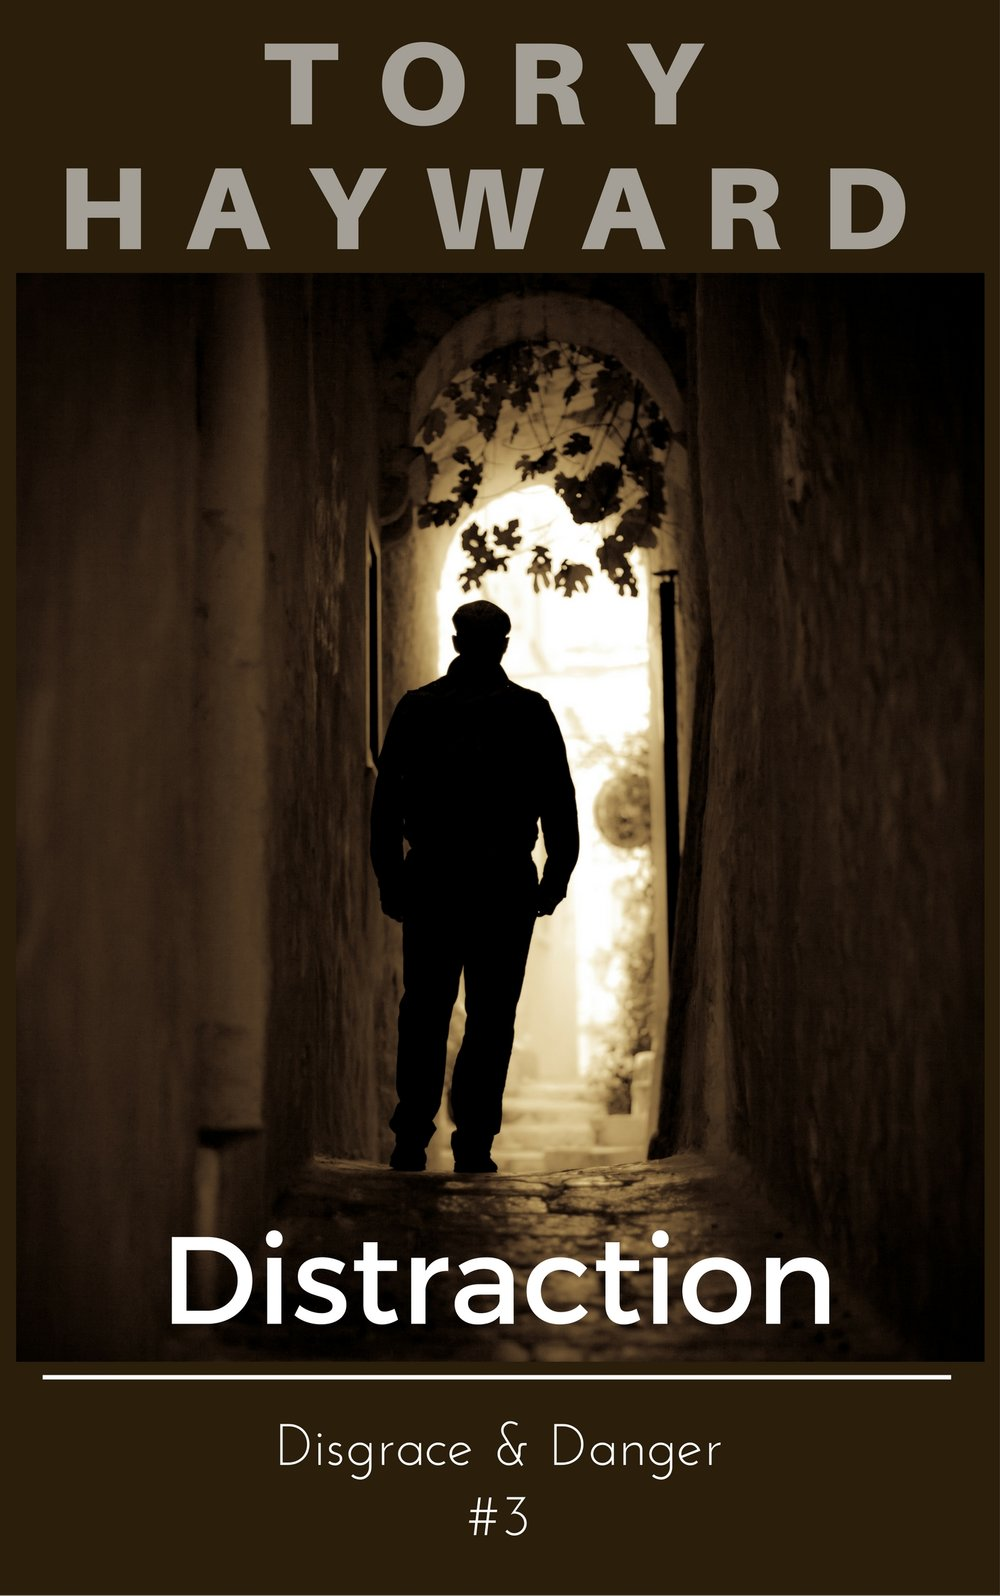 Copy of Disgrace & Danger #3: Distraction